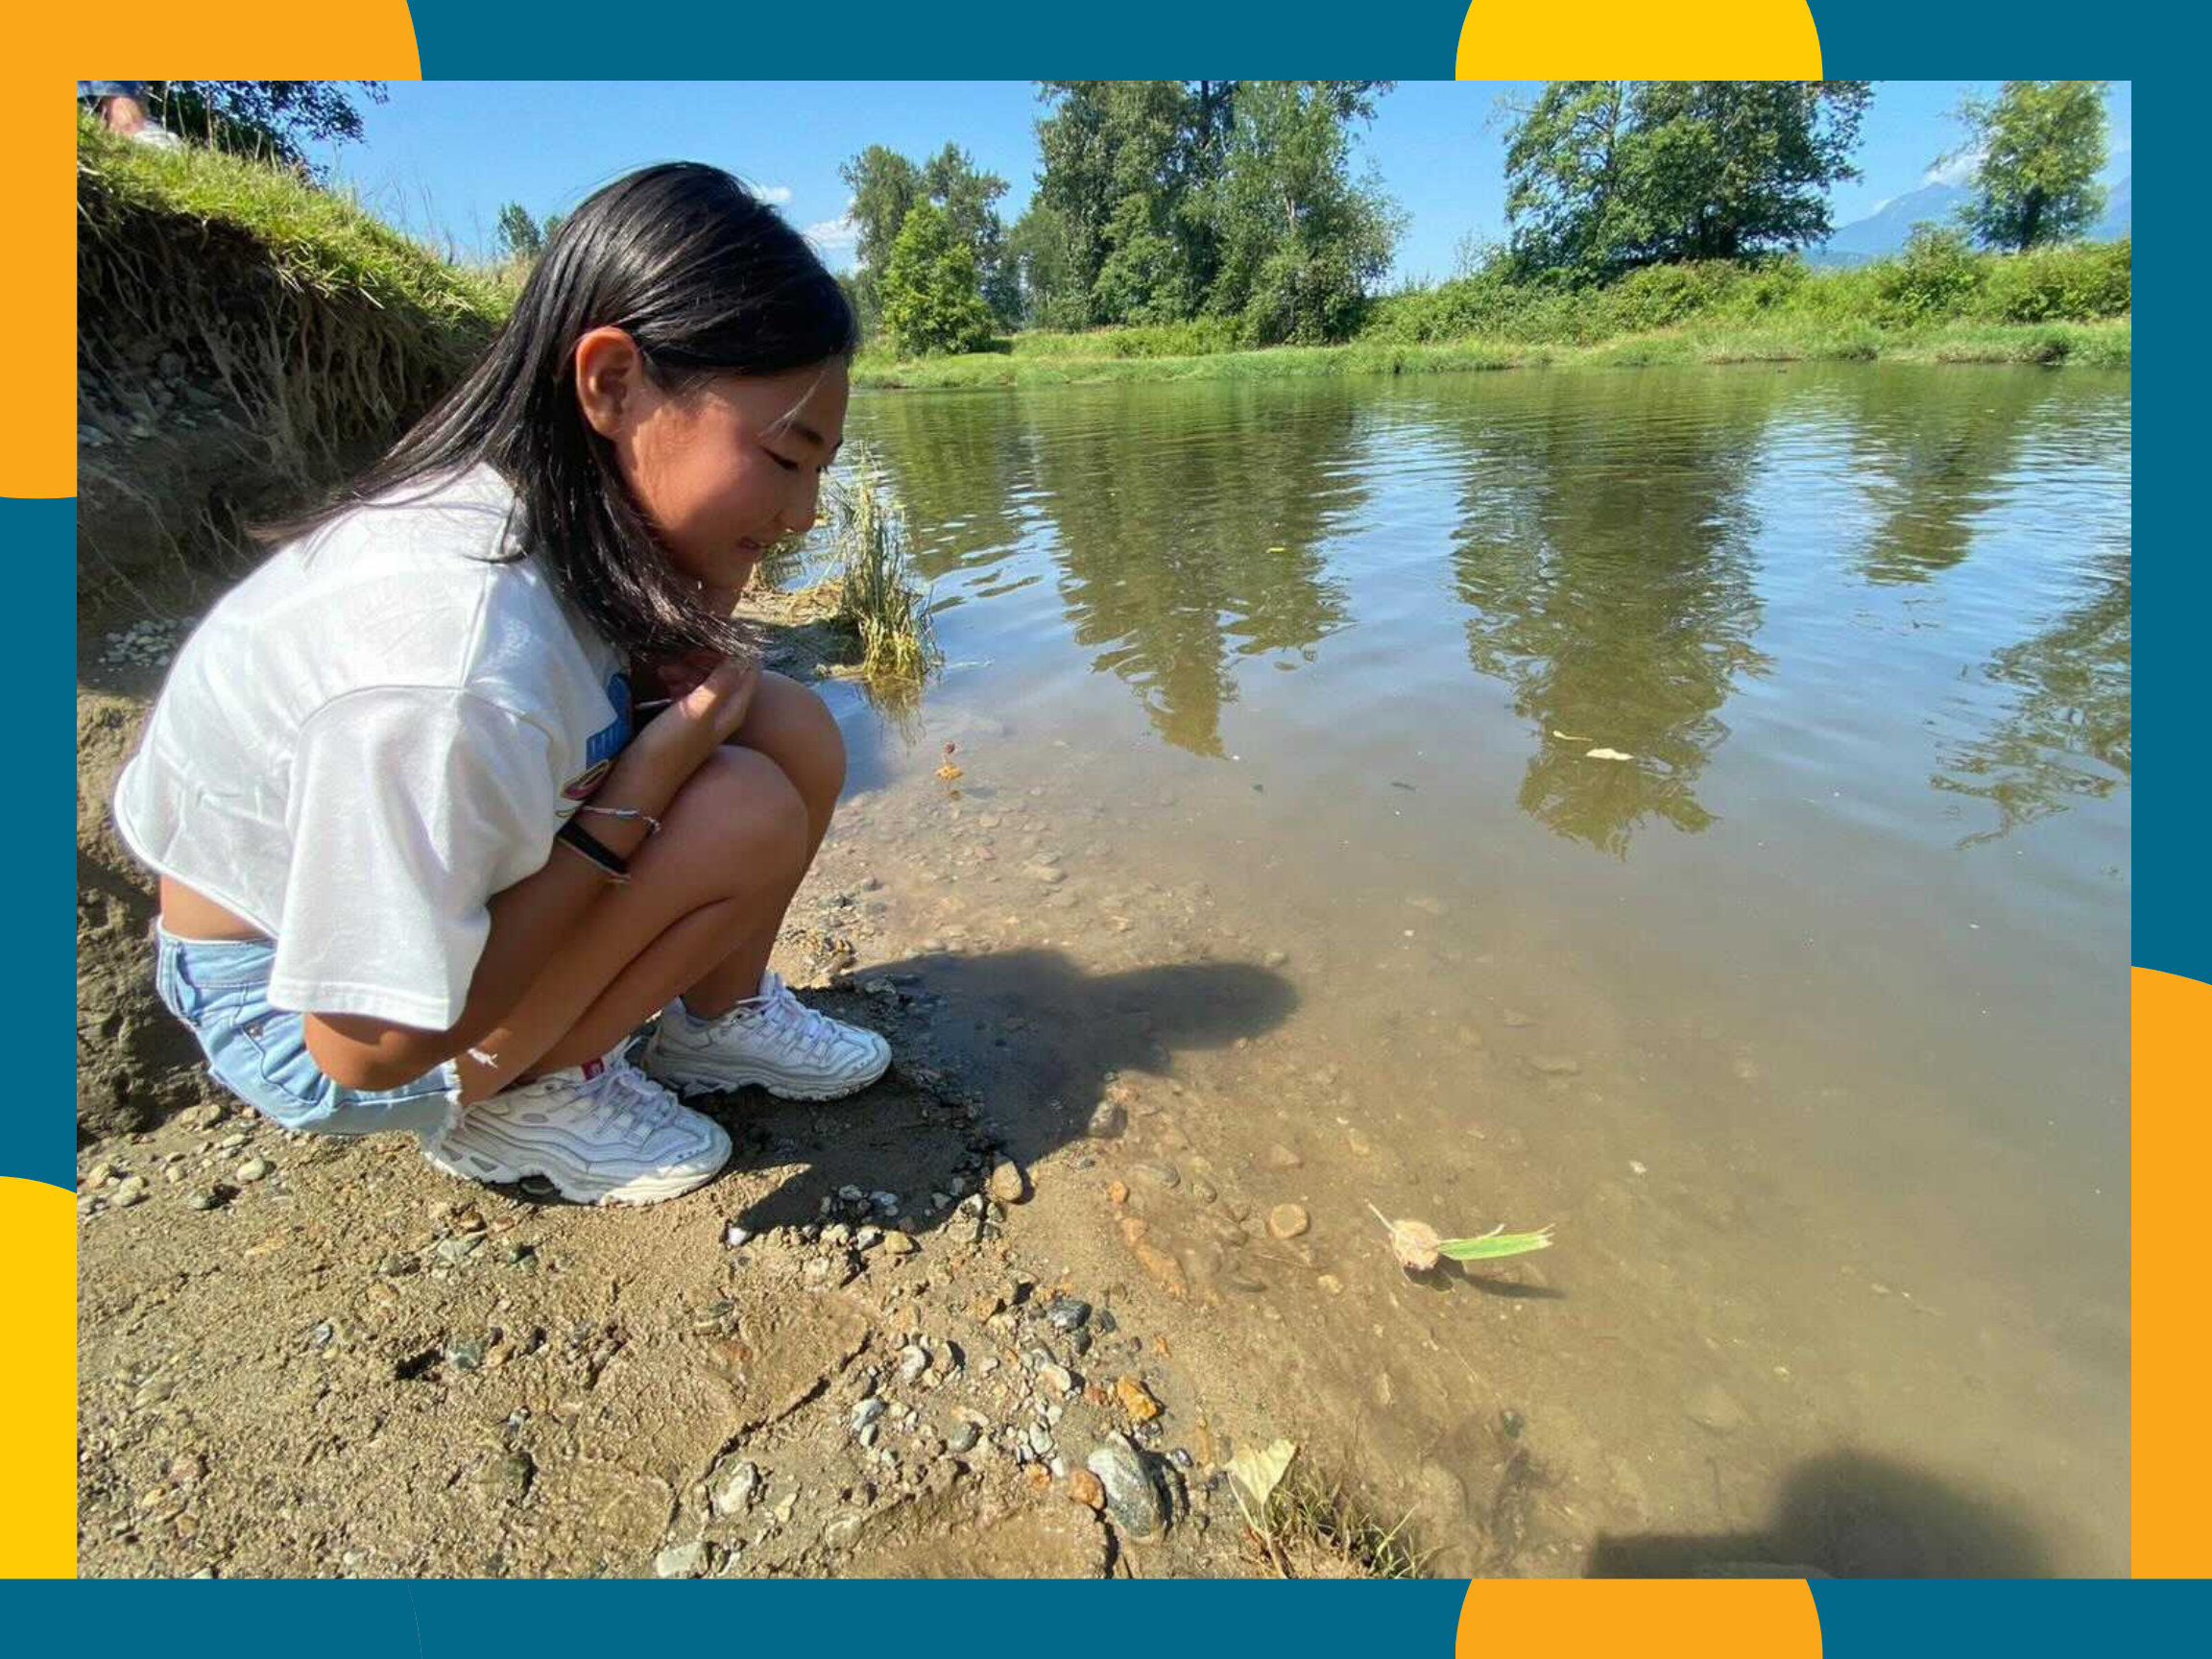 Photo shows a child standing by a lake in Jerry Sulina Park, Maple Ridge. She has just created a toy boat using leaves and twigs, and is testing to see if it will float.